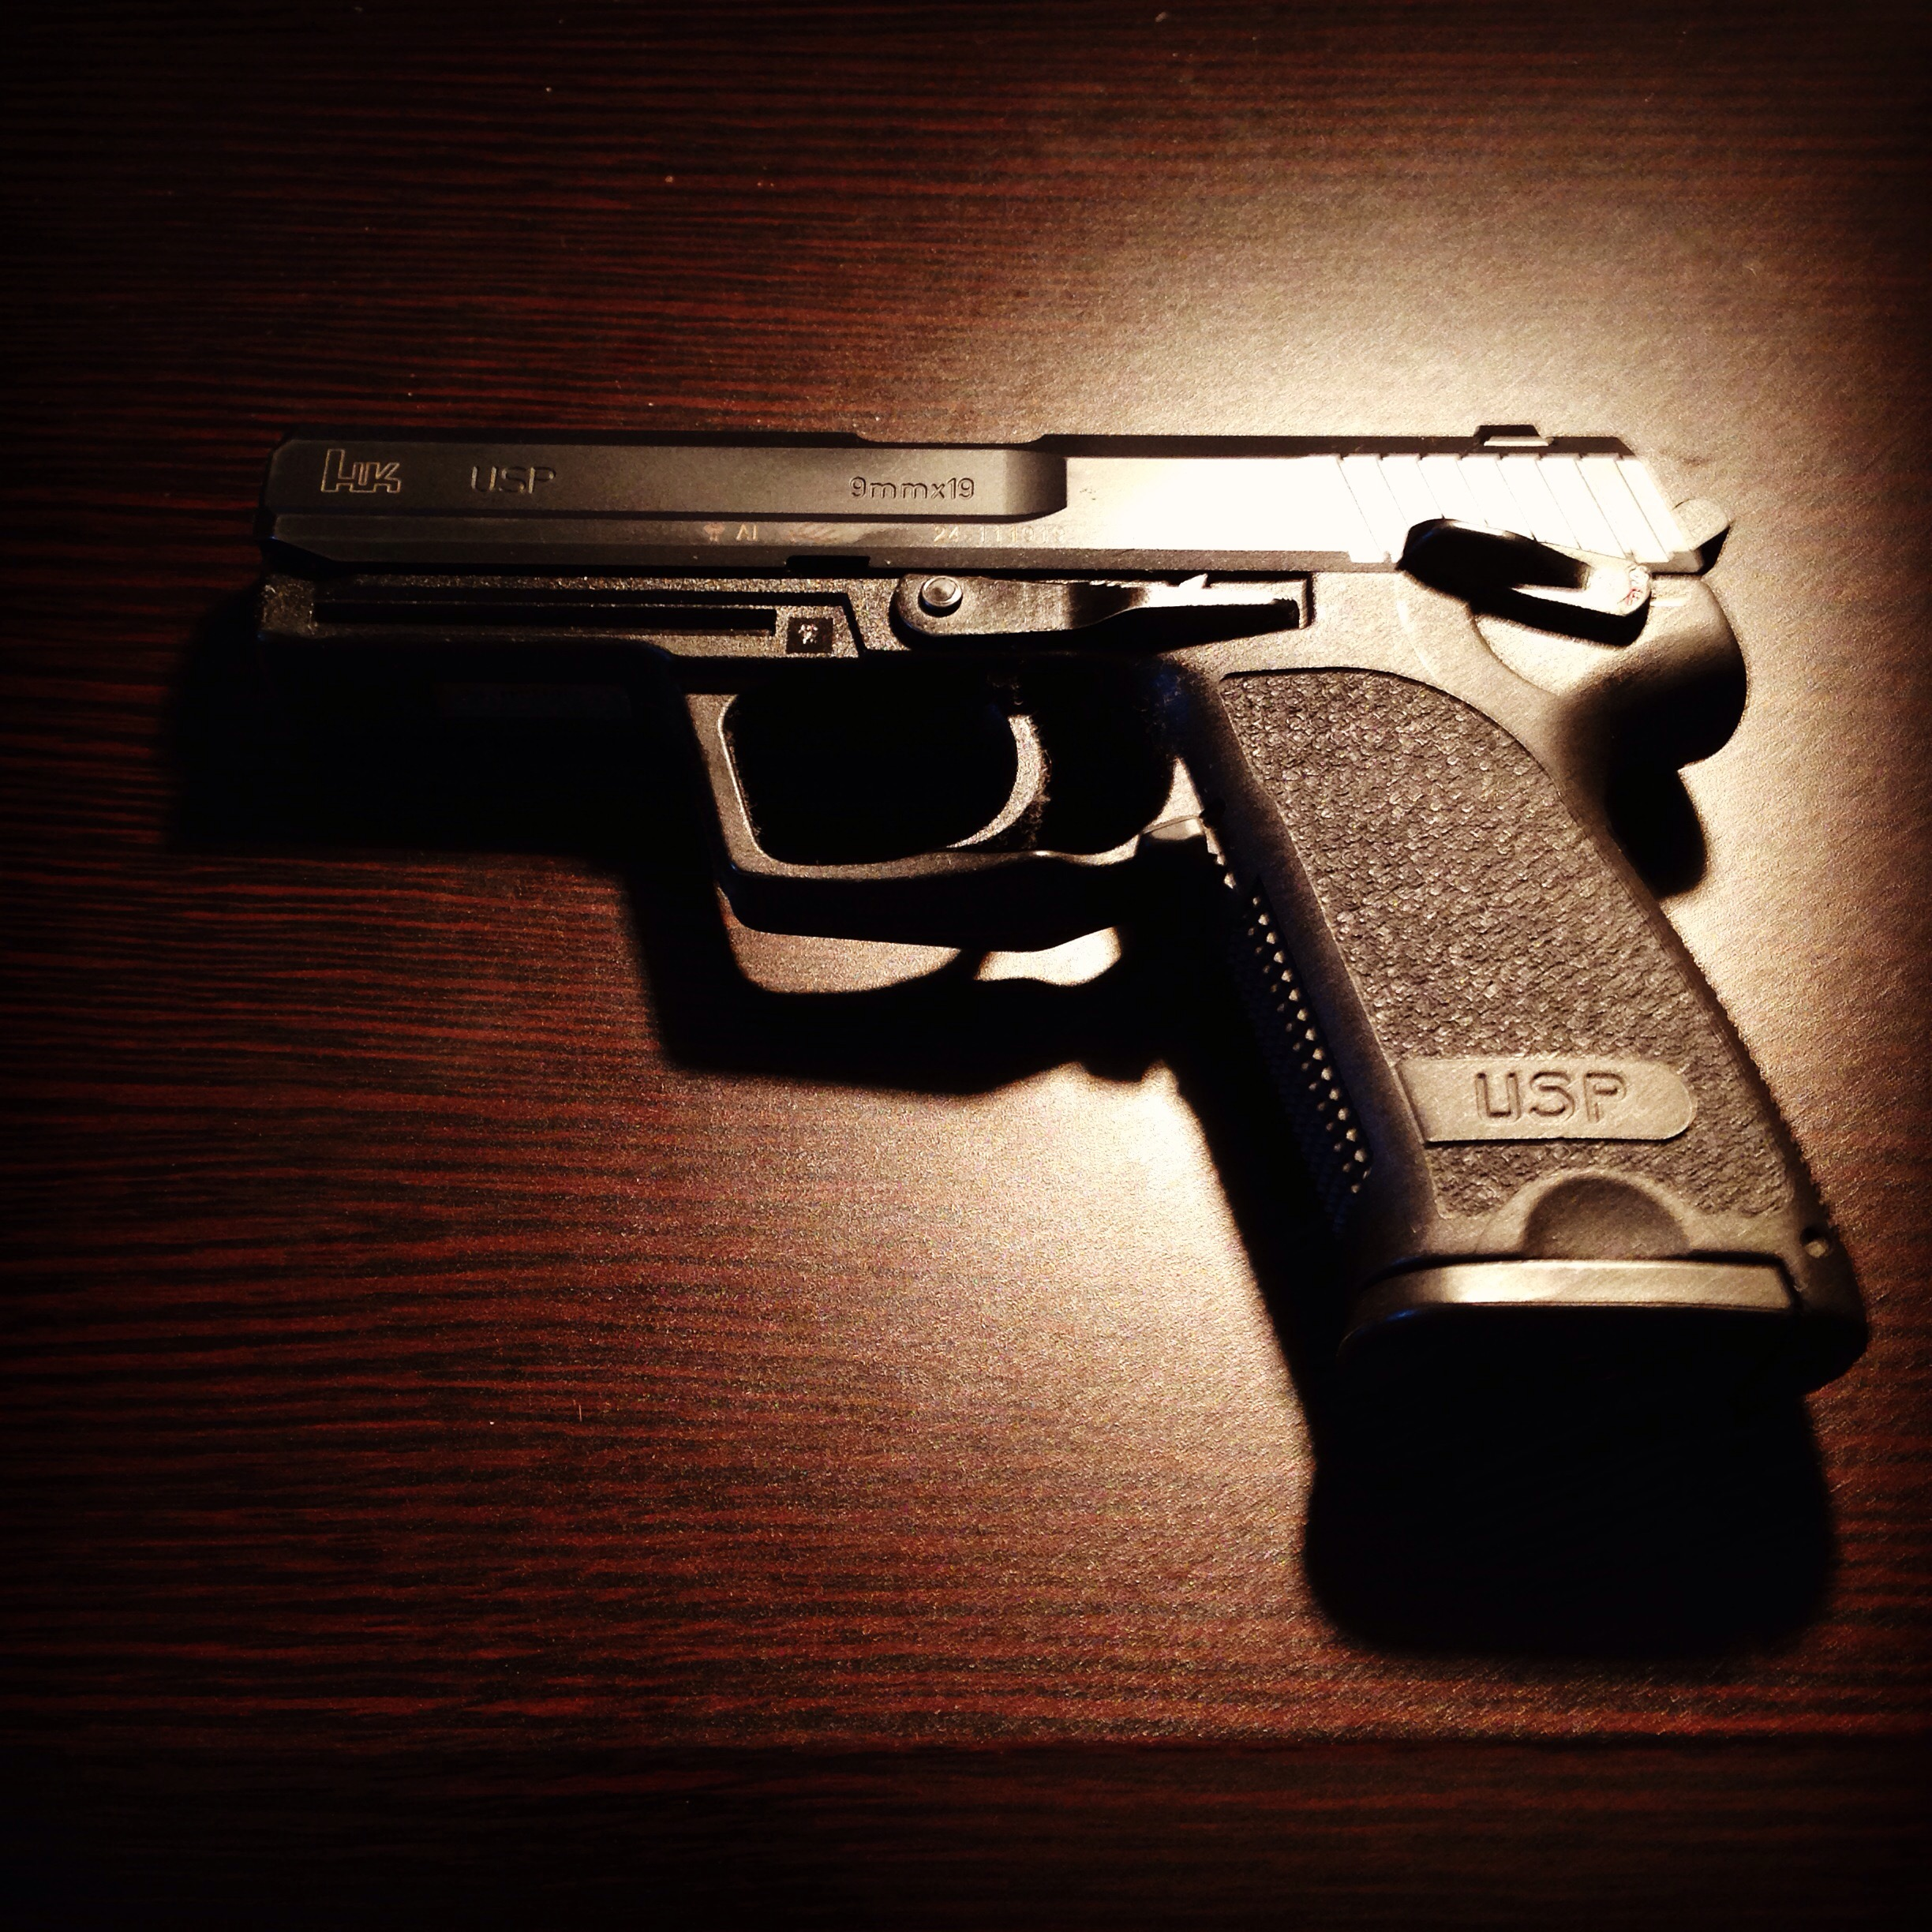 Man Arrested and Fined R10K for Expired Firearm Licence: The Facts